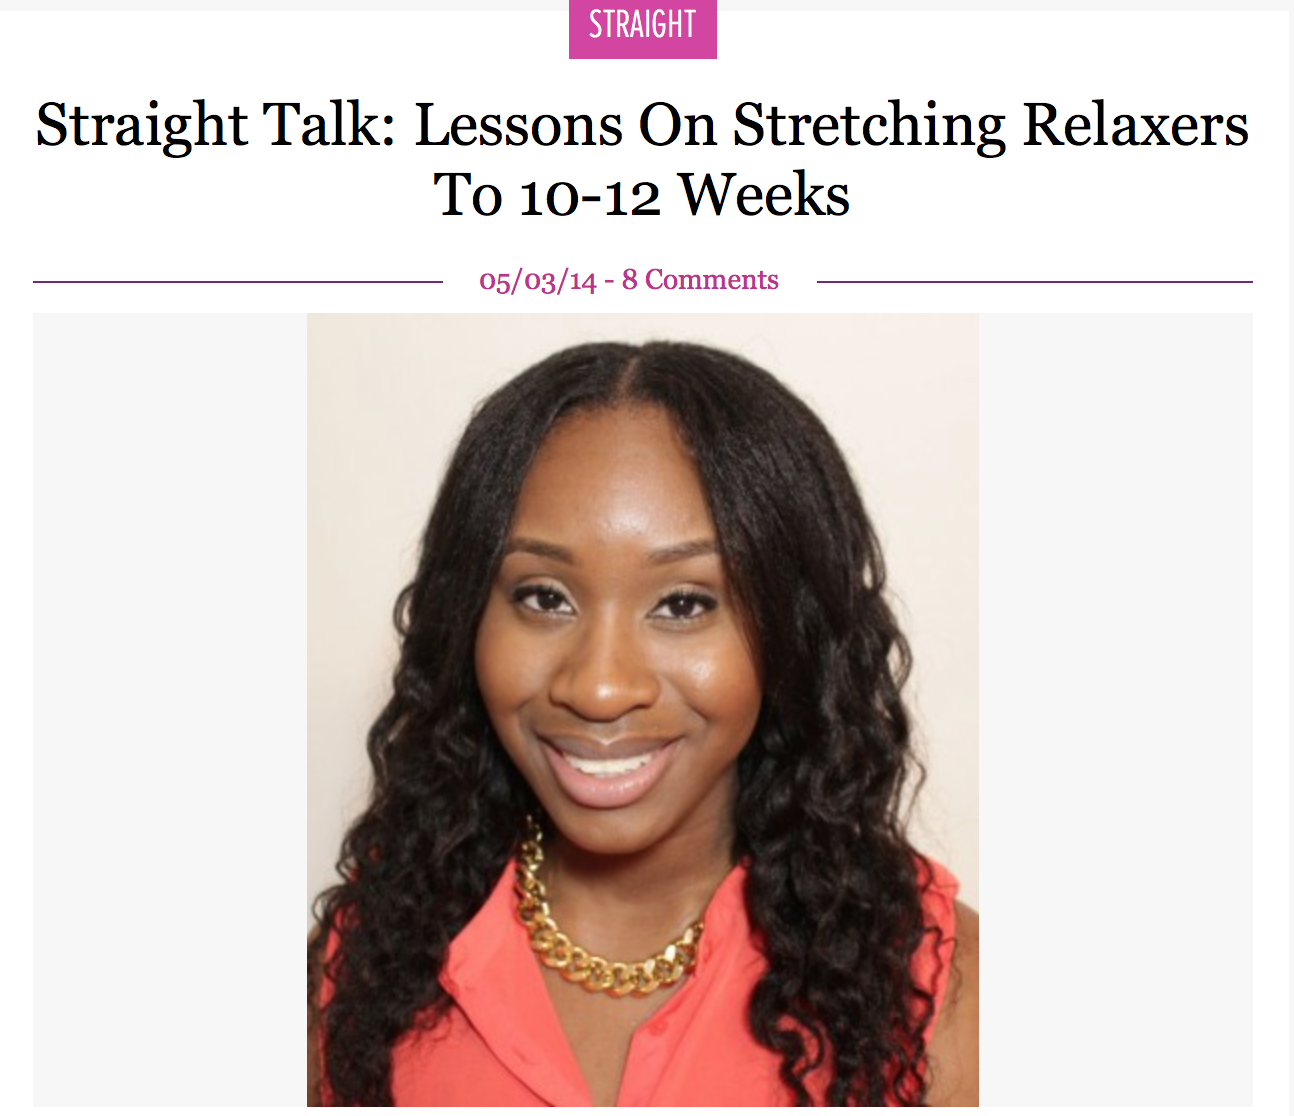 Lessons on Stretching Relaxers to 10-12 Weeks